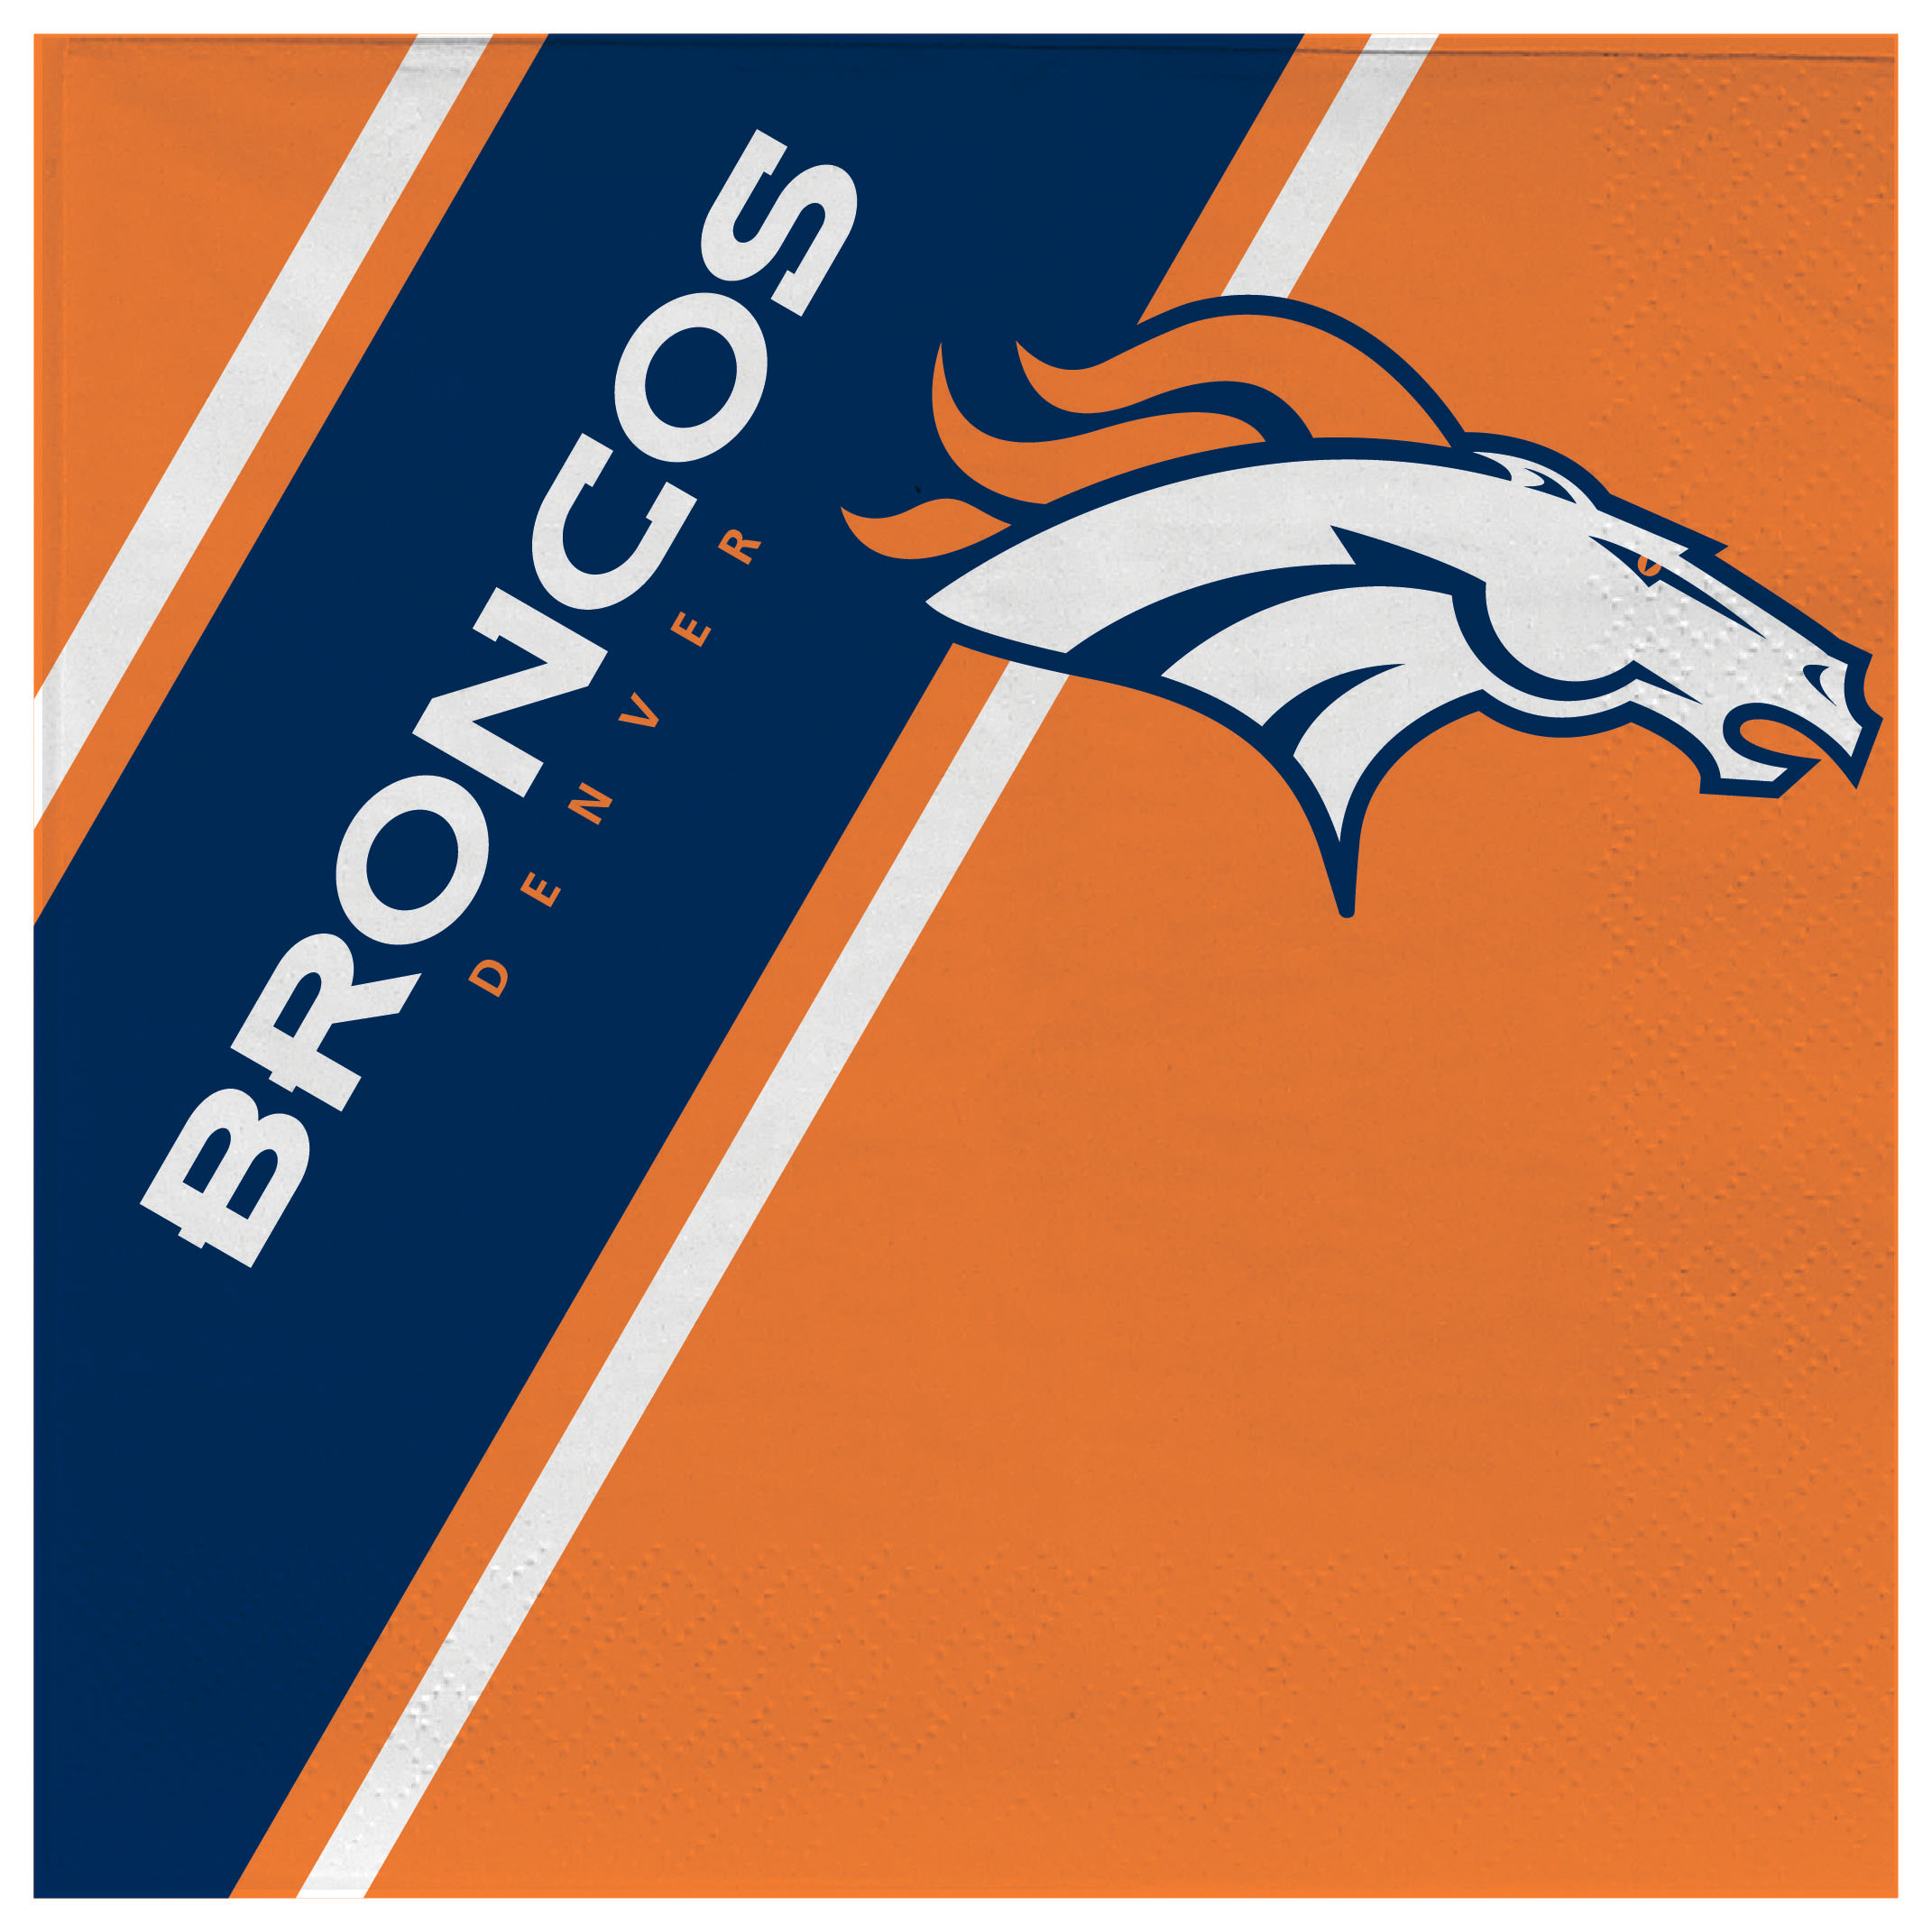 Football Nfl Football Denver Broncos Bath - 9413106108 - Denver Broncos Disposable Napkins 9413106108